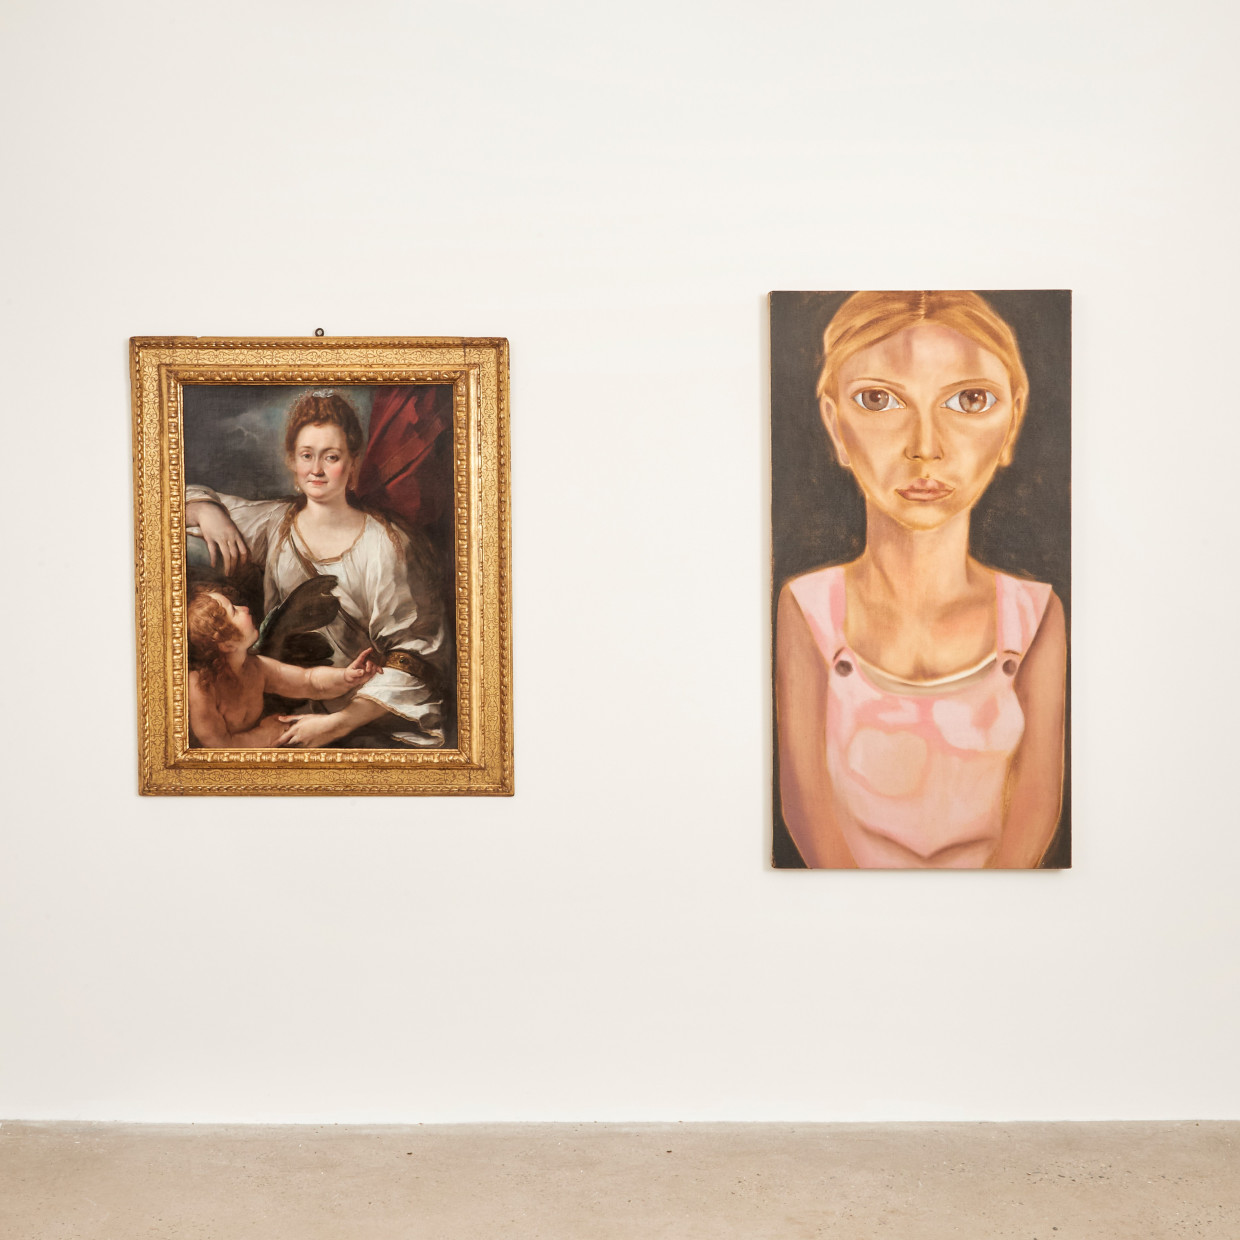 Two Artists, Two Actresses, On view now at Robilant+Voena's space in New York, 980 Madison, Suite 303